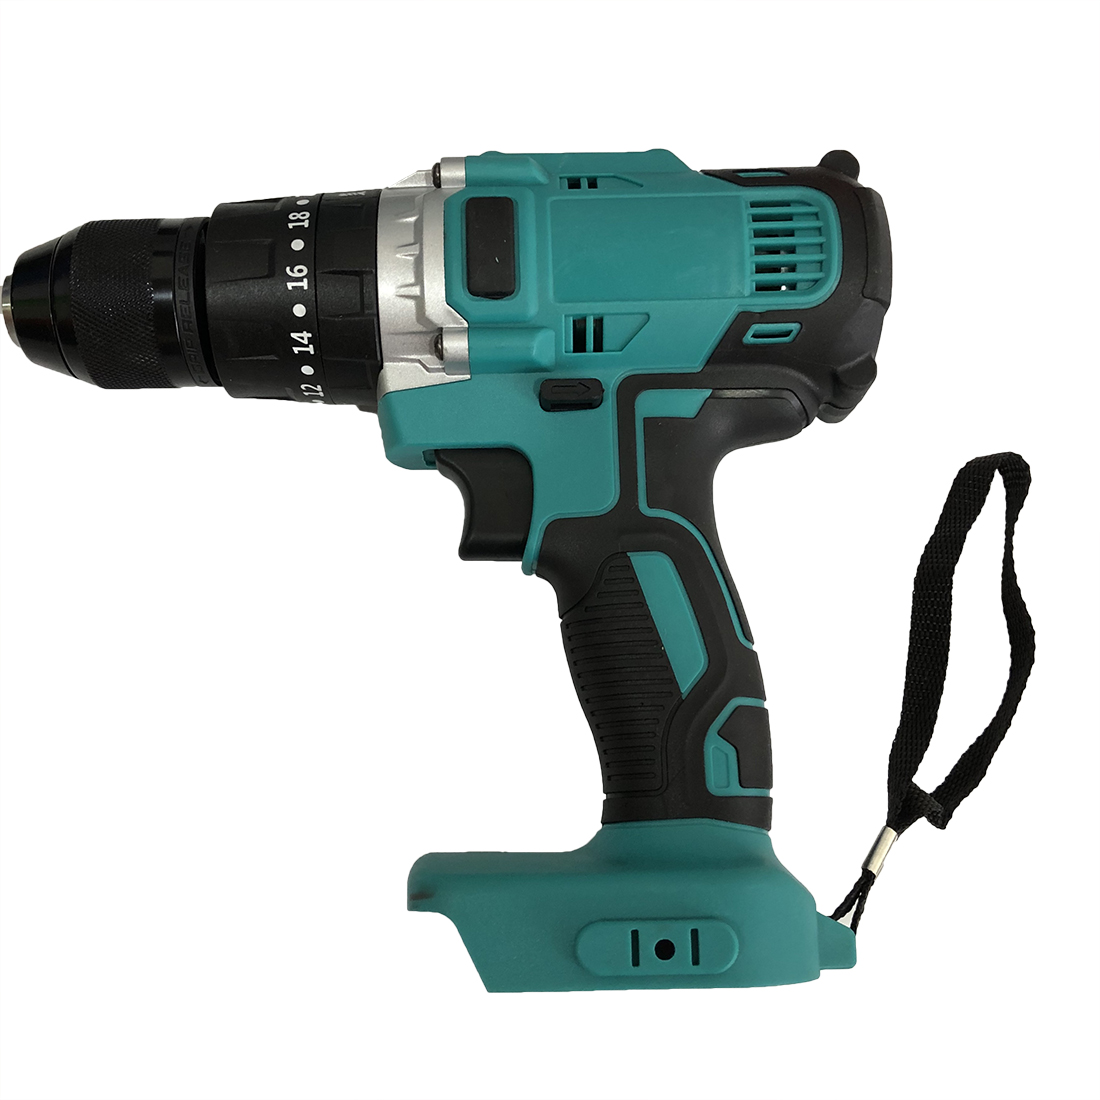 Cordless Brushless Impact Drill Electric Screwdriver For Makita 18-21V Li-ion Battery No Batteries Woodworking Tools